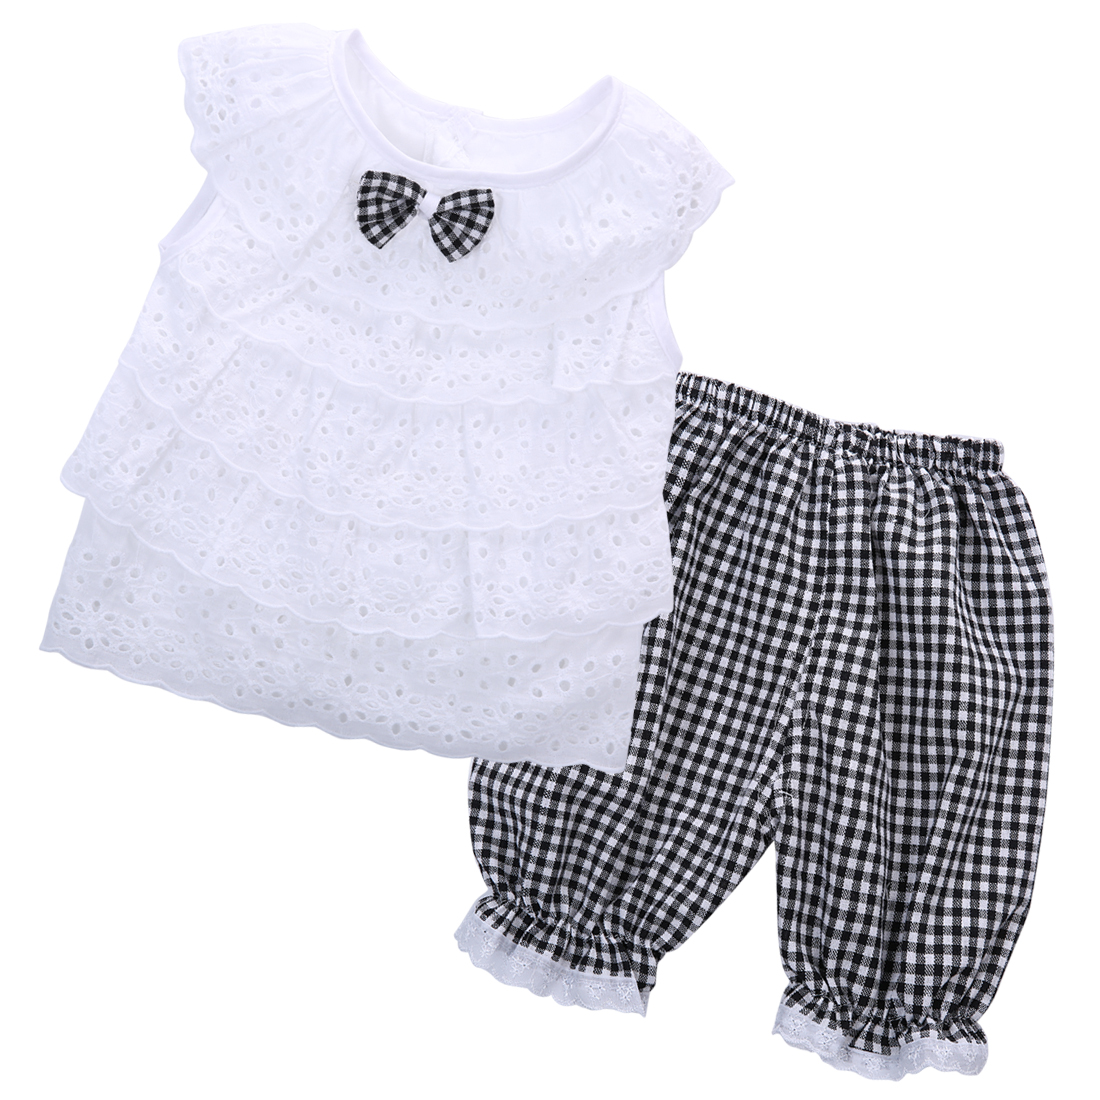 Baby: Free Shipping on orders over $45 at 0549sahibi.tk - Your Online Baby Store! Get 5% in rewards with Club O!